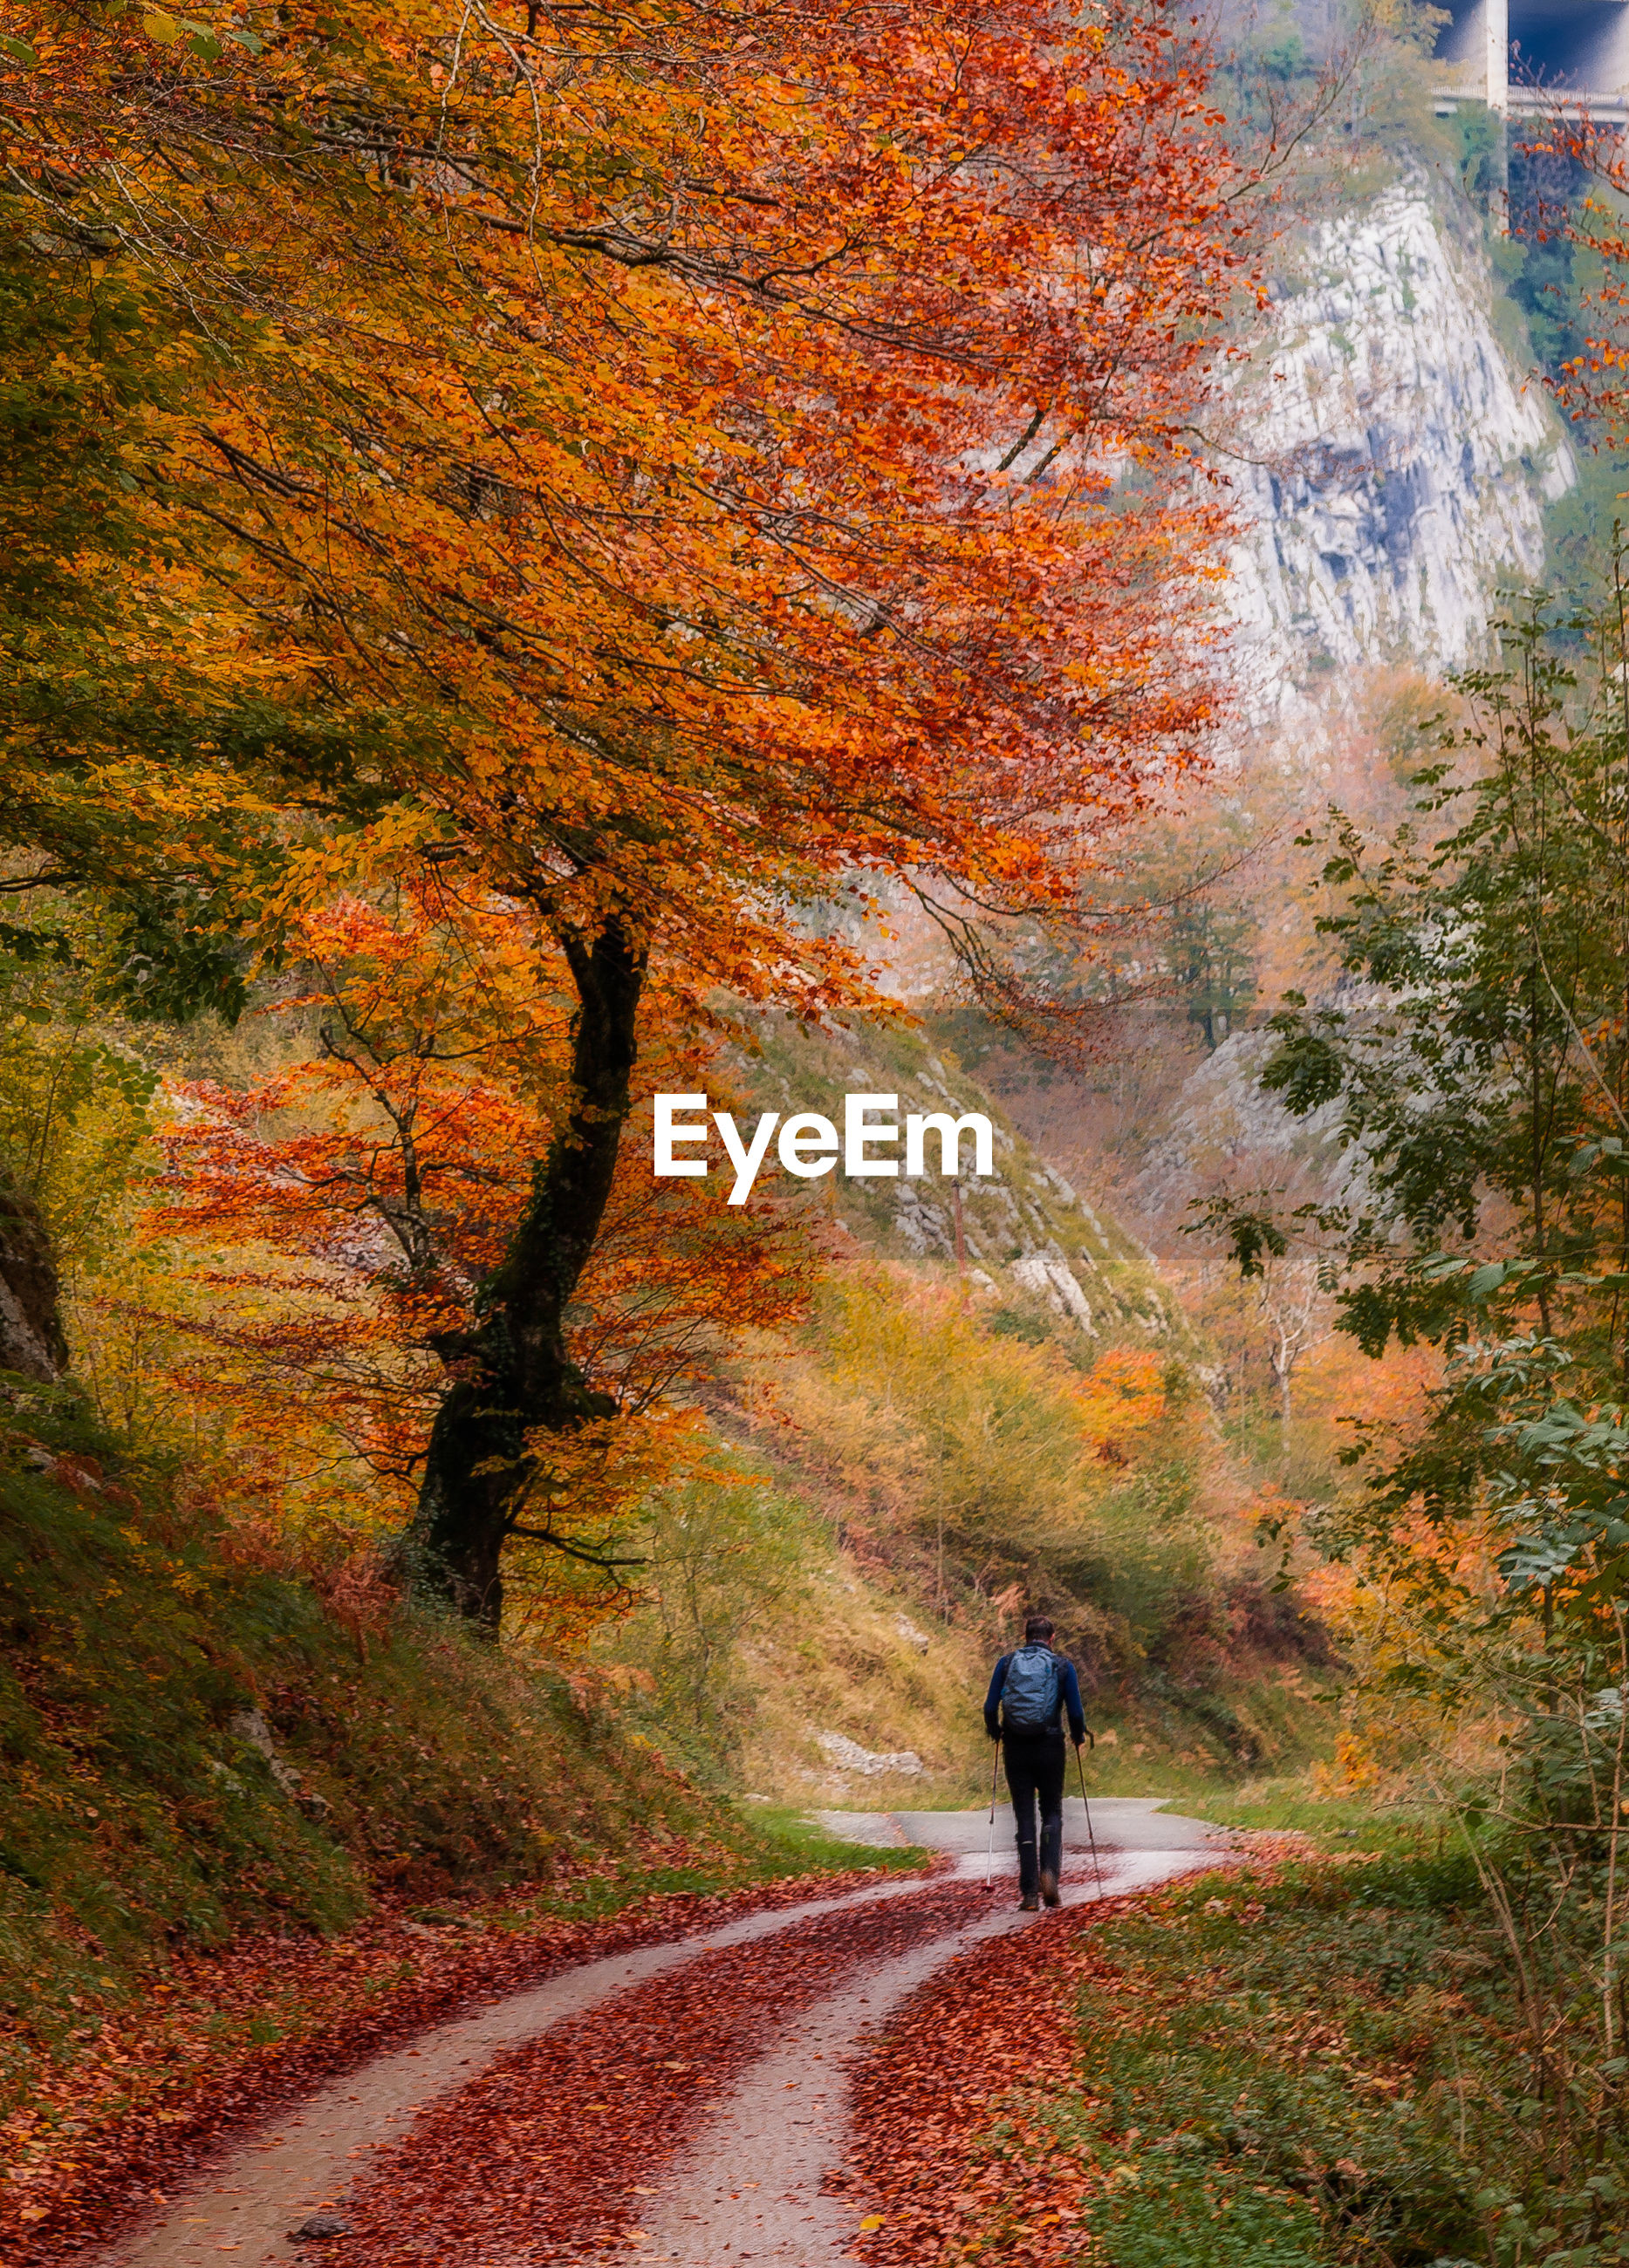 REAR VIEW OF MAN WALKING ON ROAD AMIDST AUTUMN TREES